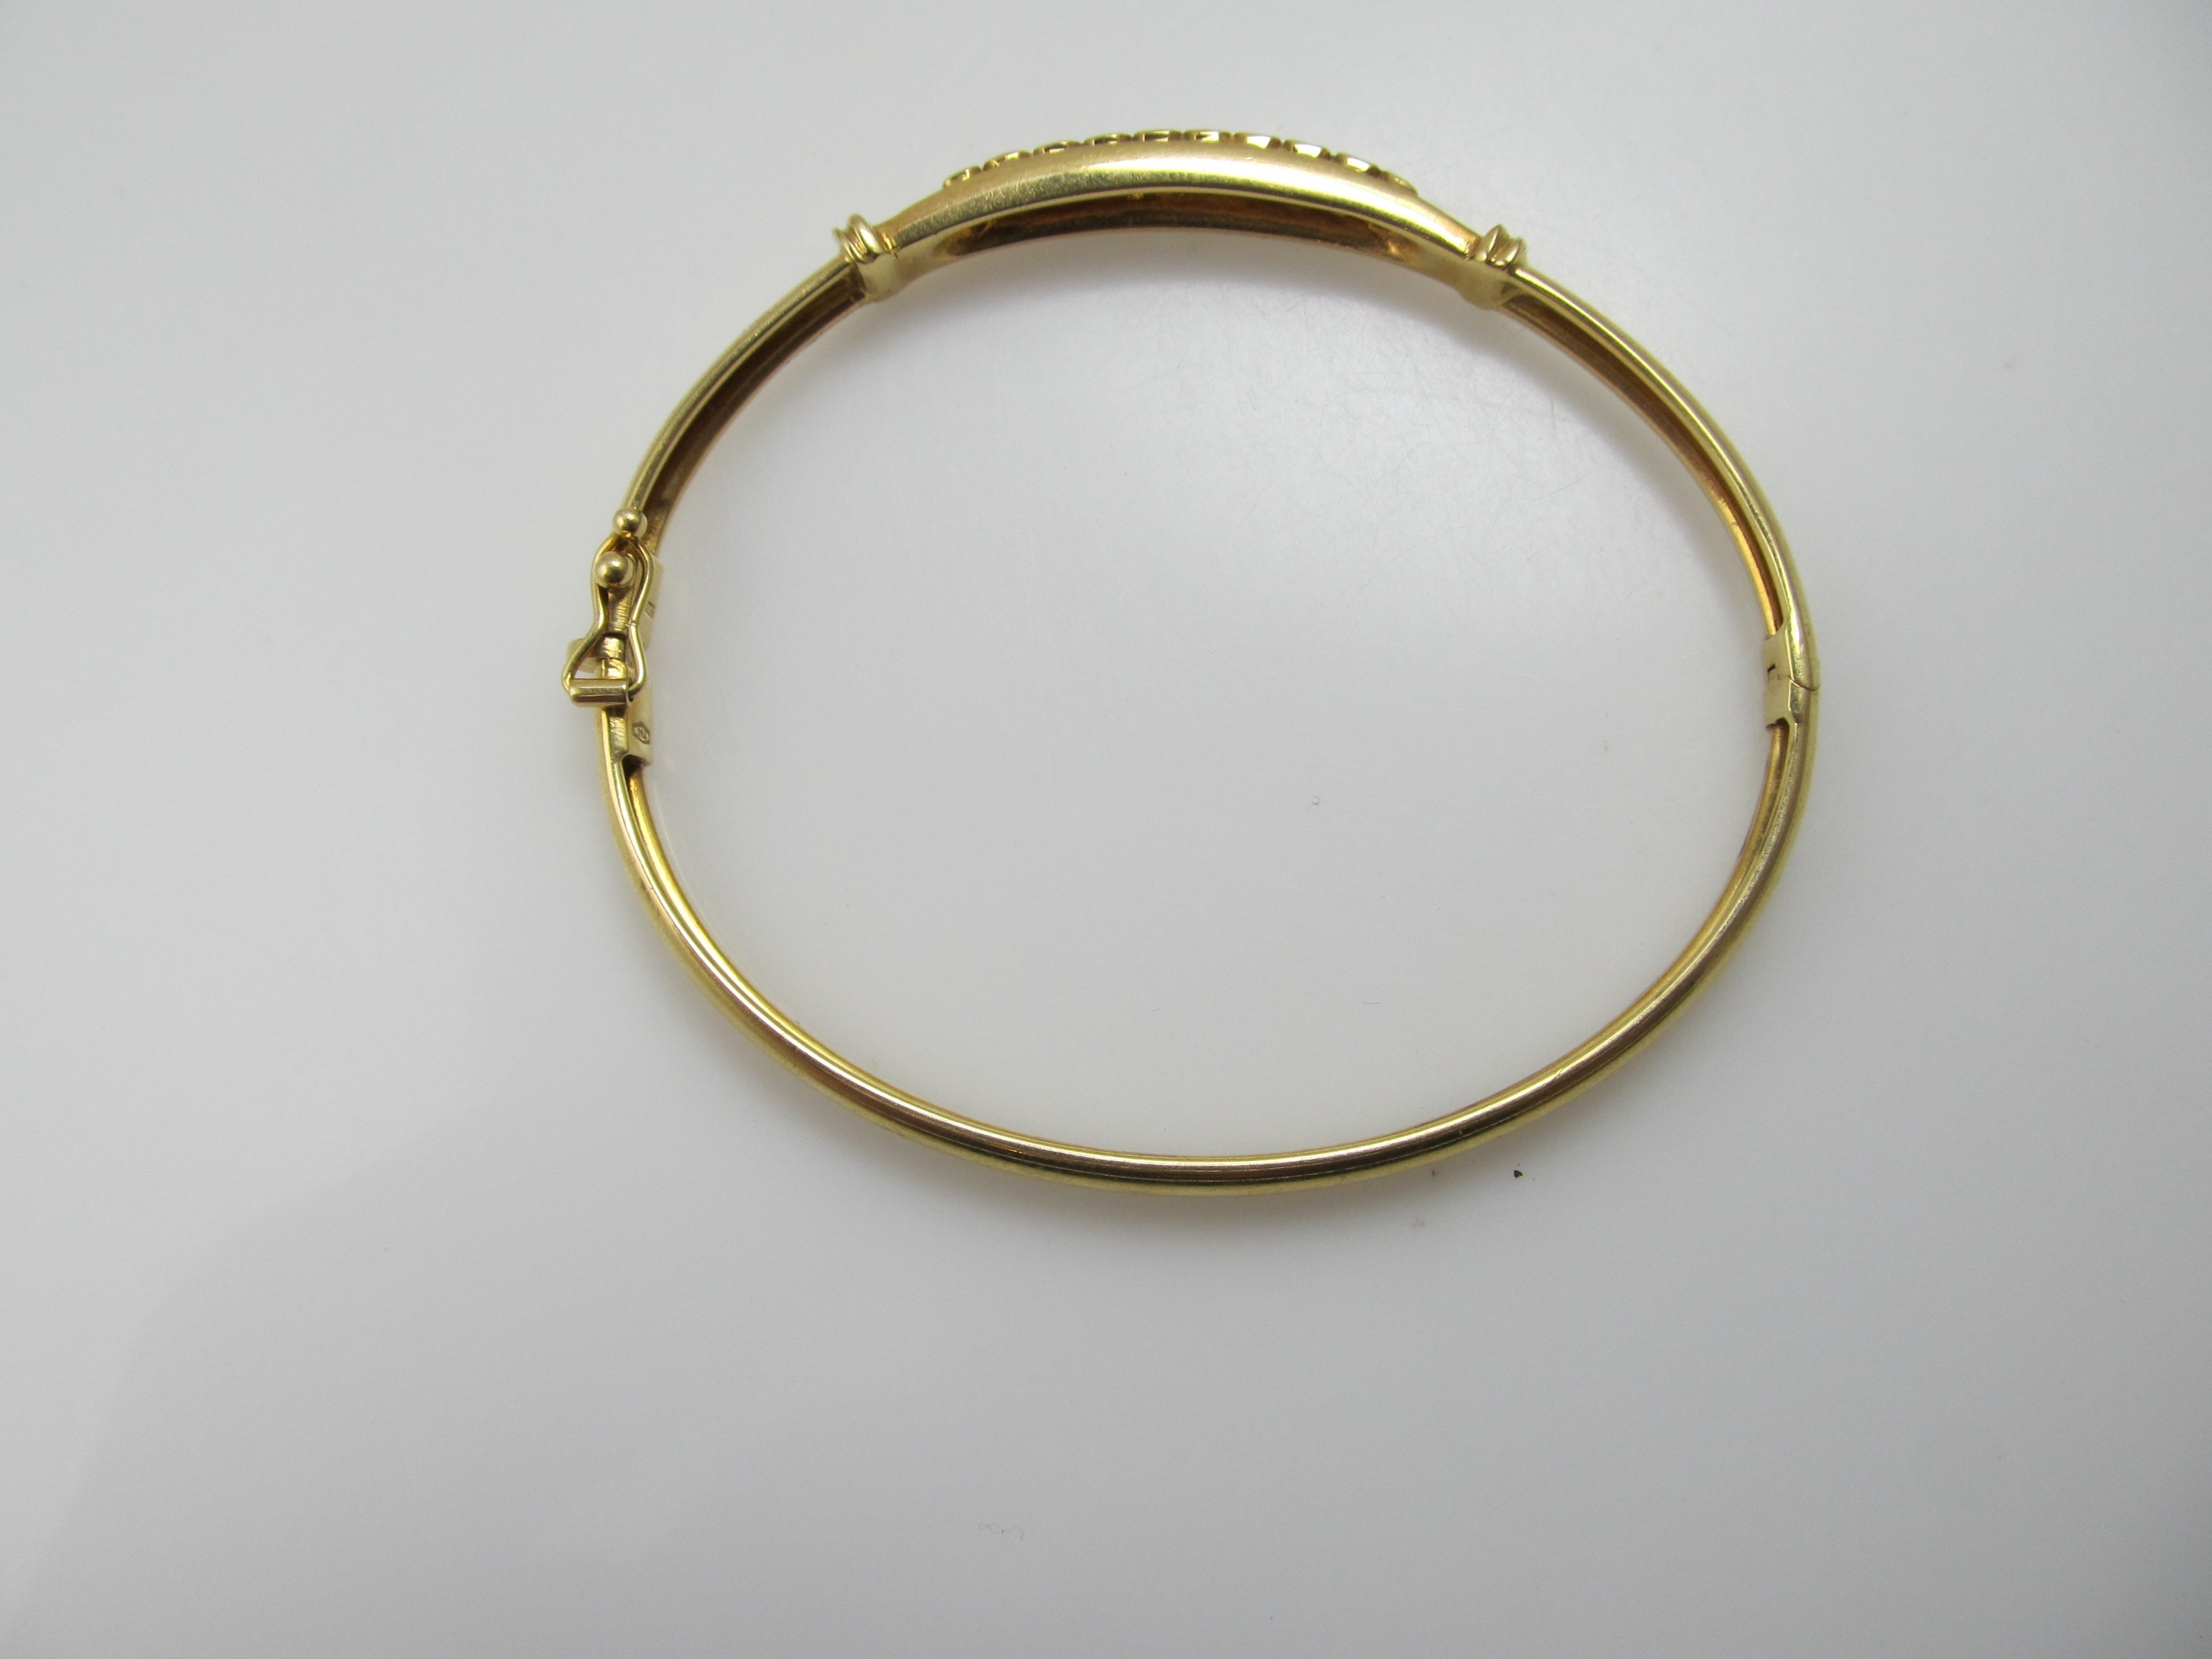 products kavantandsharart bangle bangles love talisman eternity knot wh gold yg diamond yellow